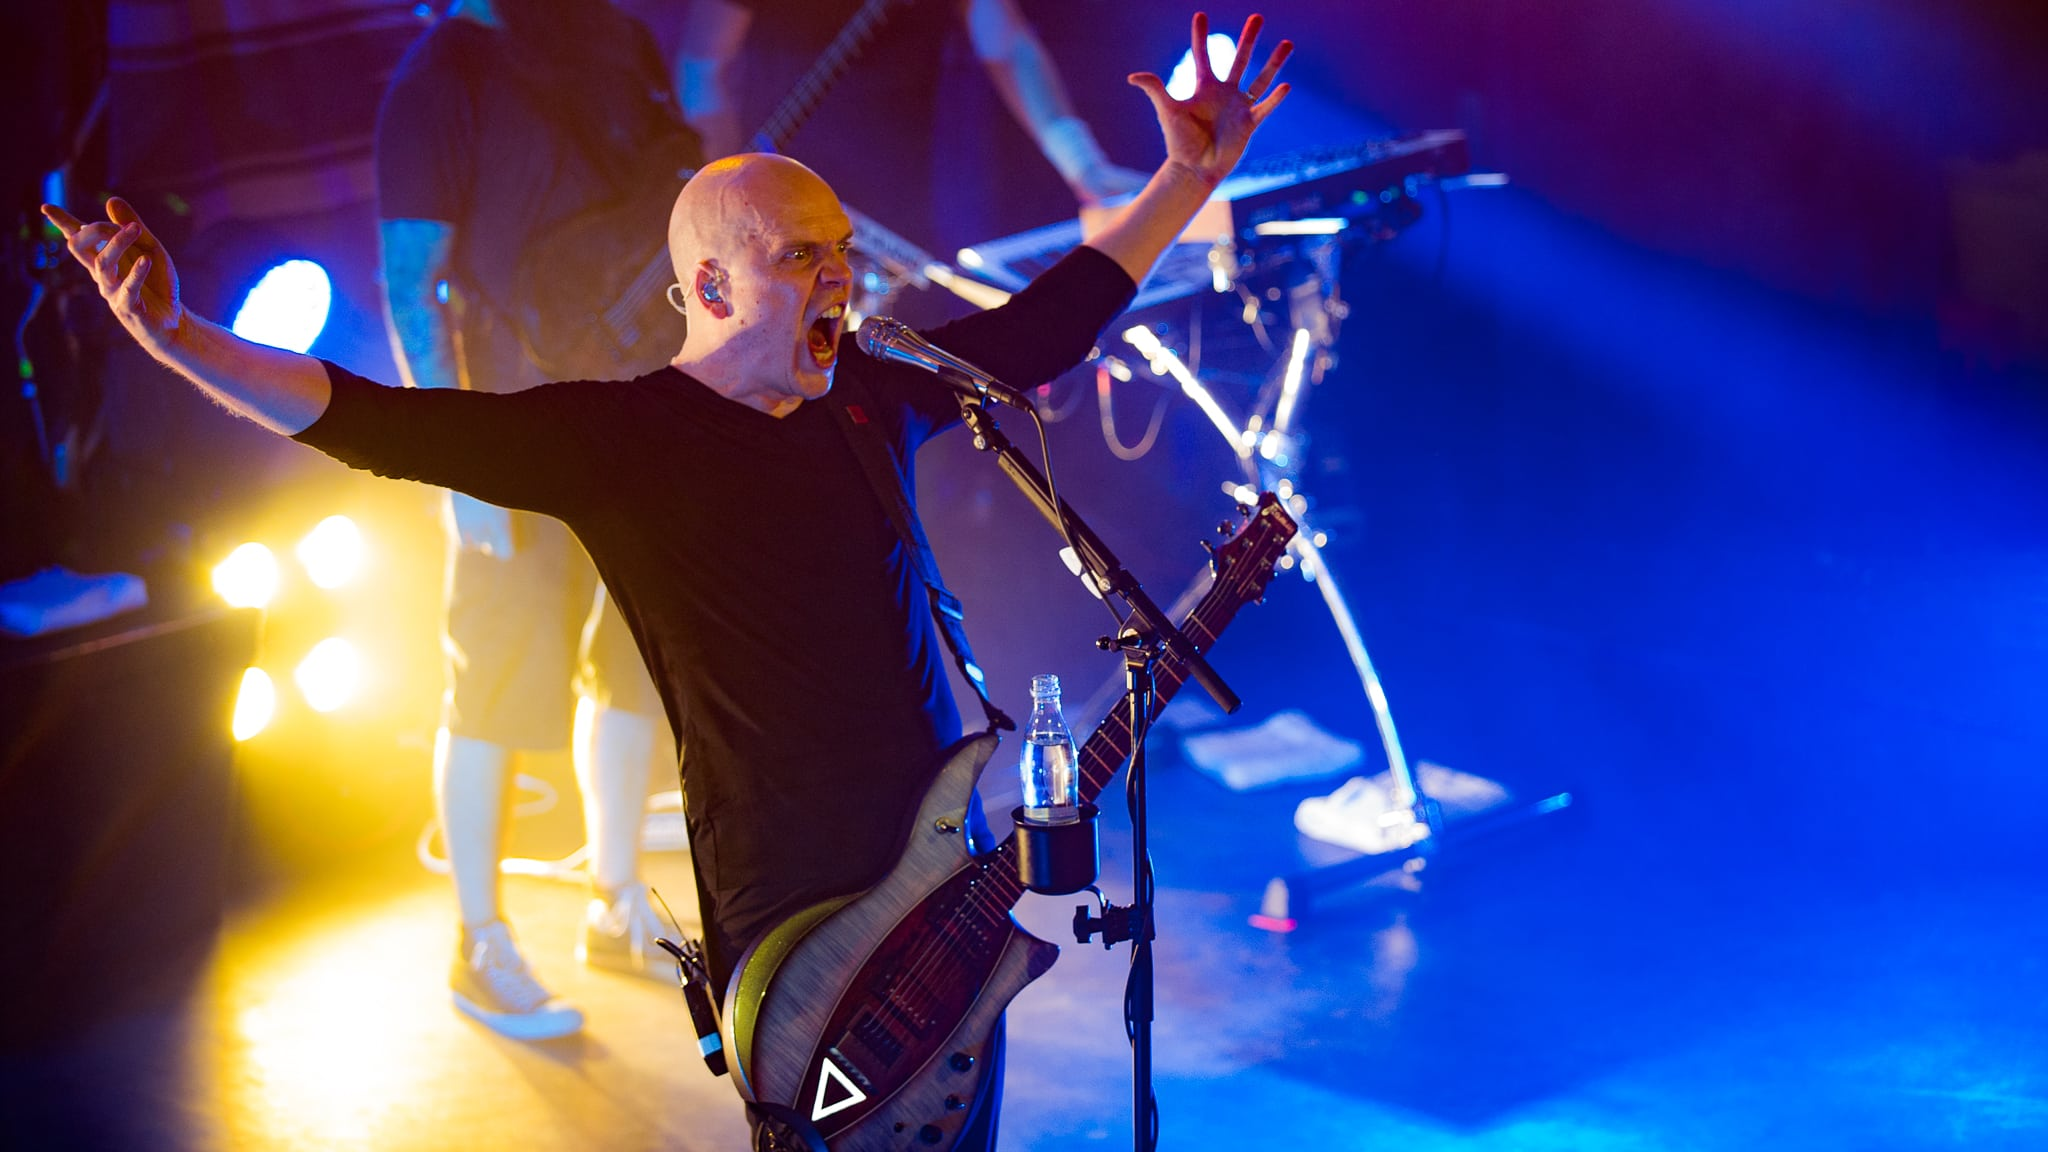 Devin Townsend Project – VoxHall